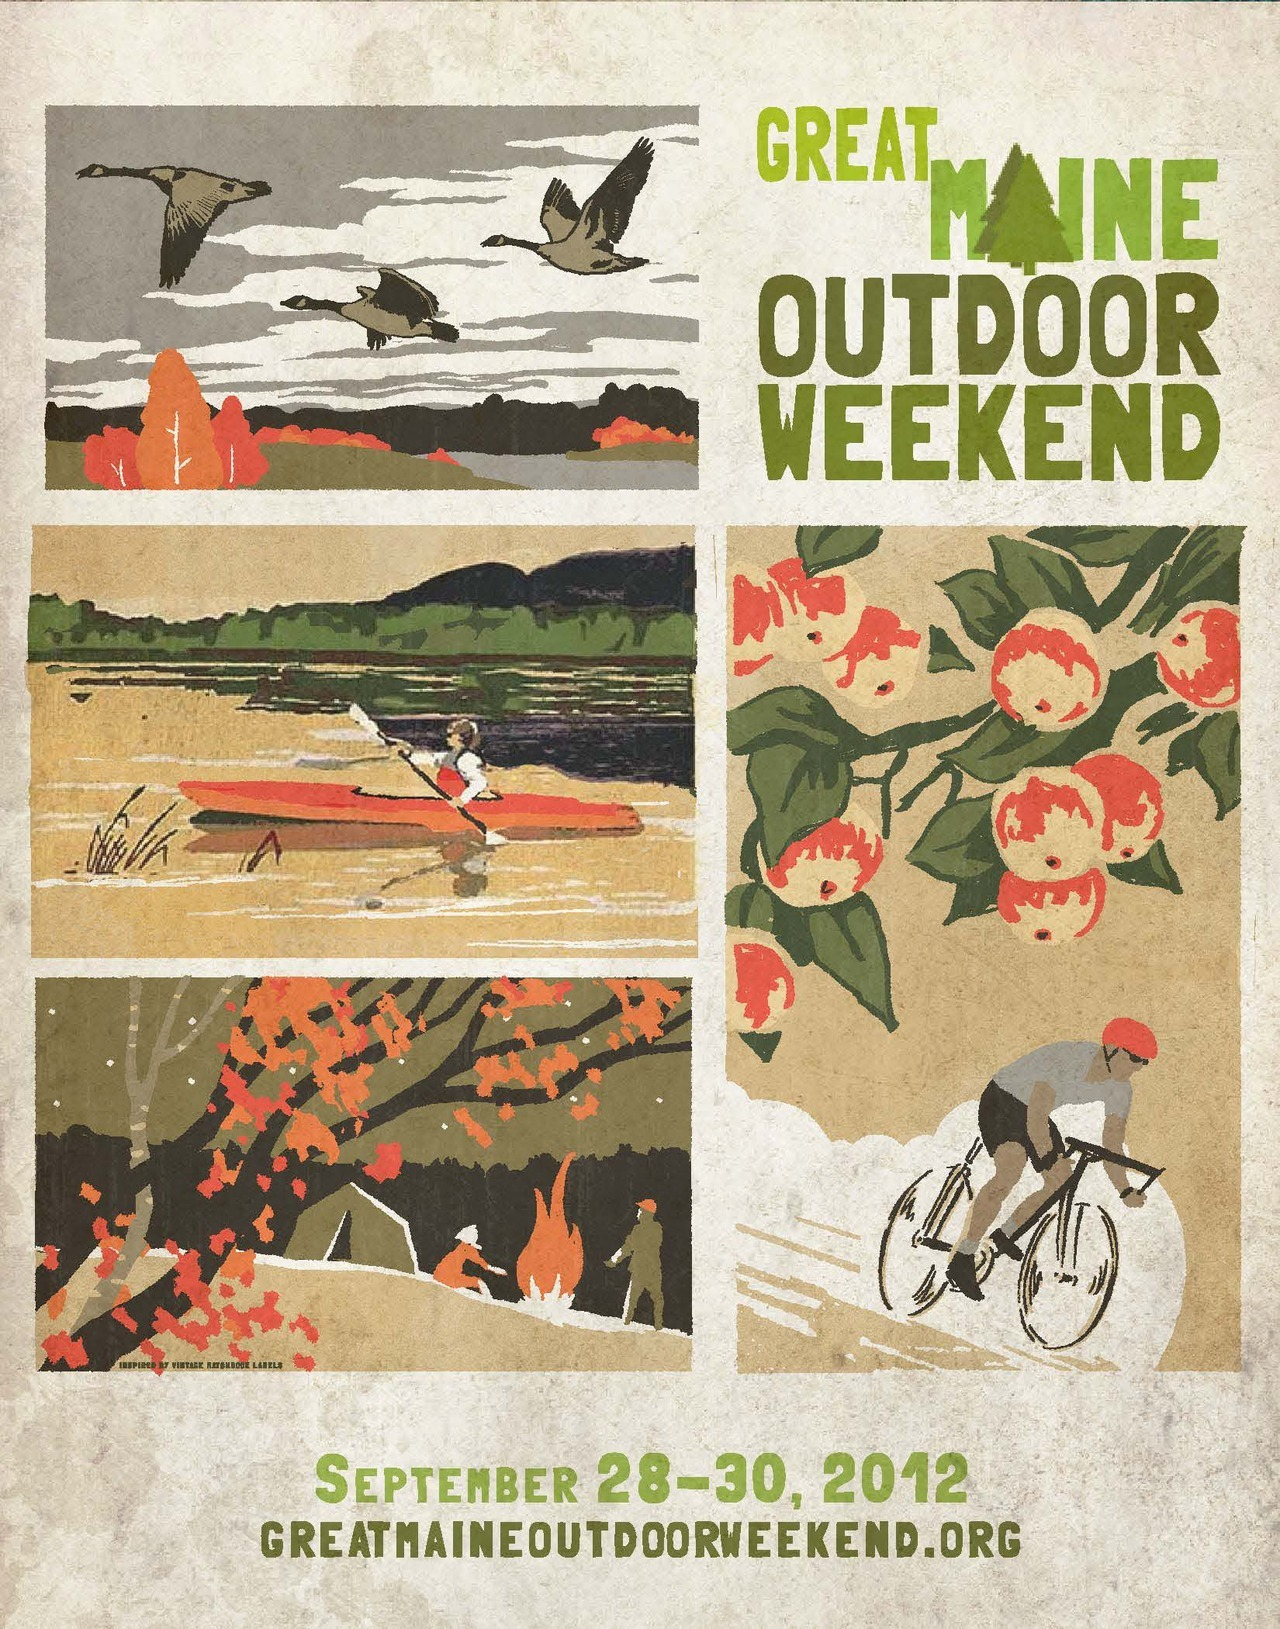 llbeanpr:  Great Maine Outdoor Weekend 2012 - Poster art created by Maine Artist and L.L.Bean Graphic Designer Peter Selmayr